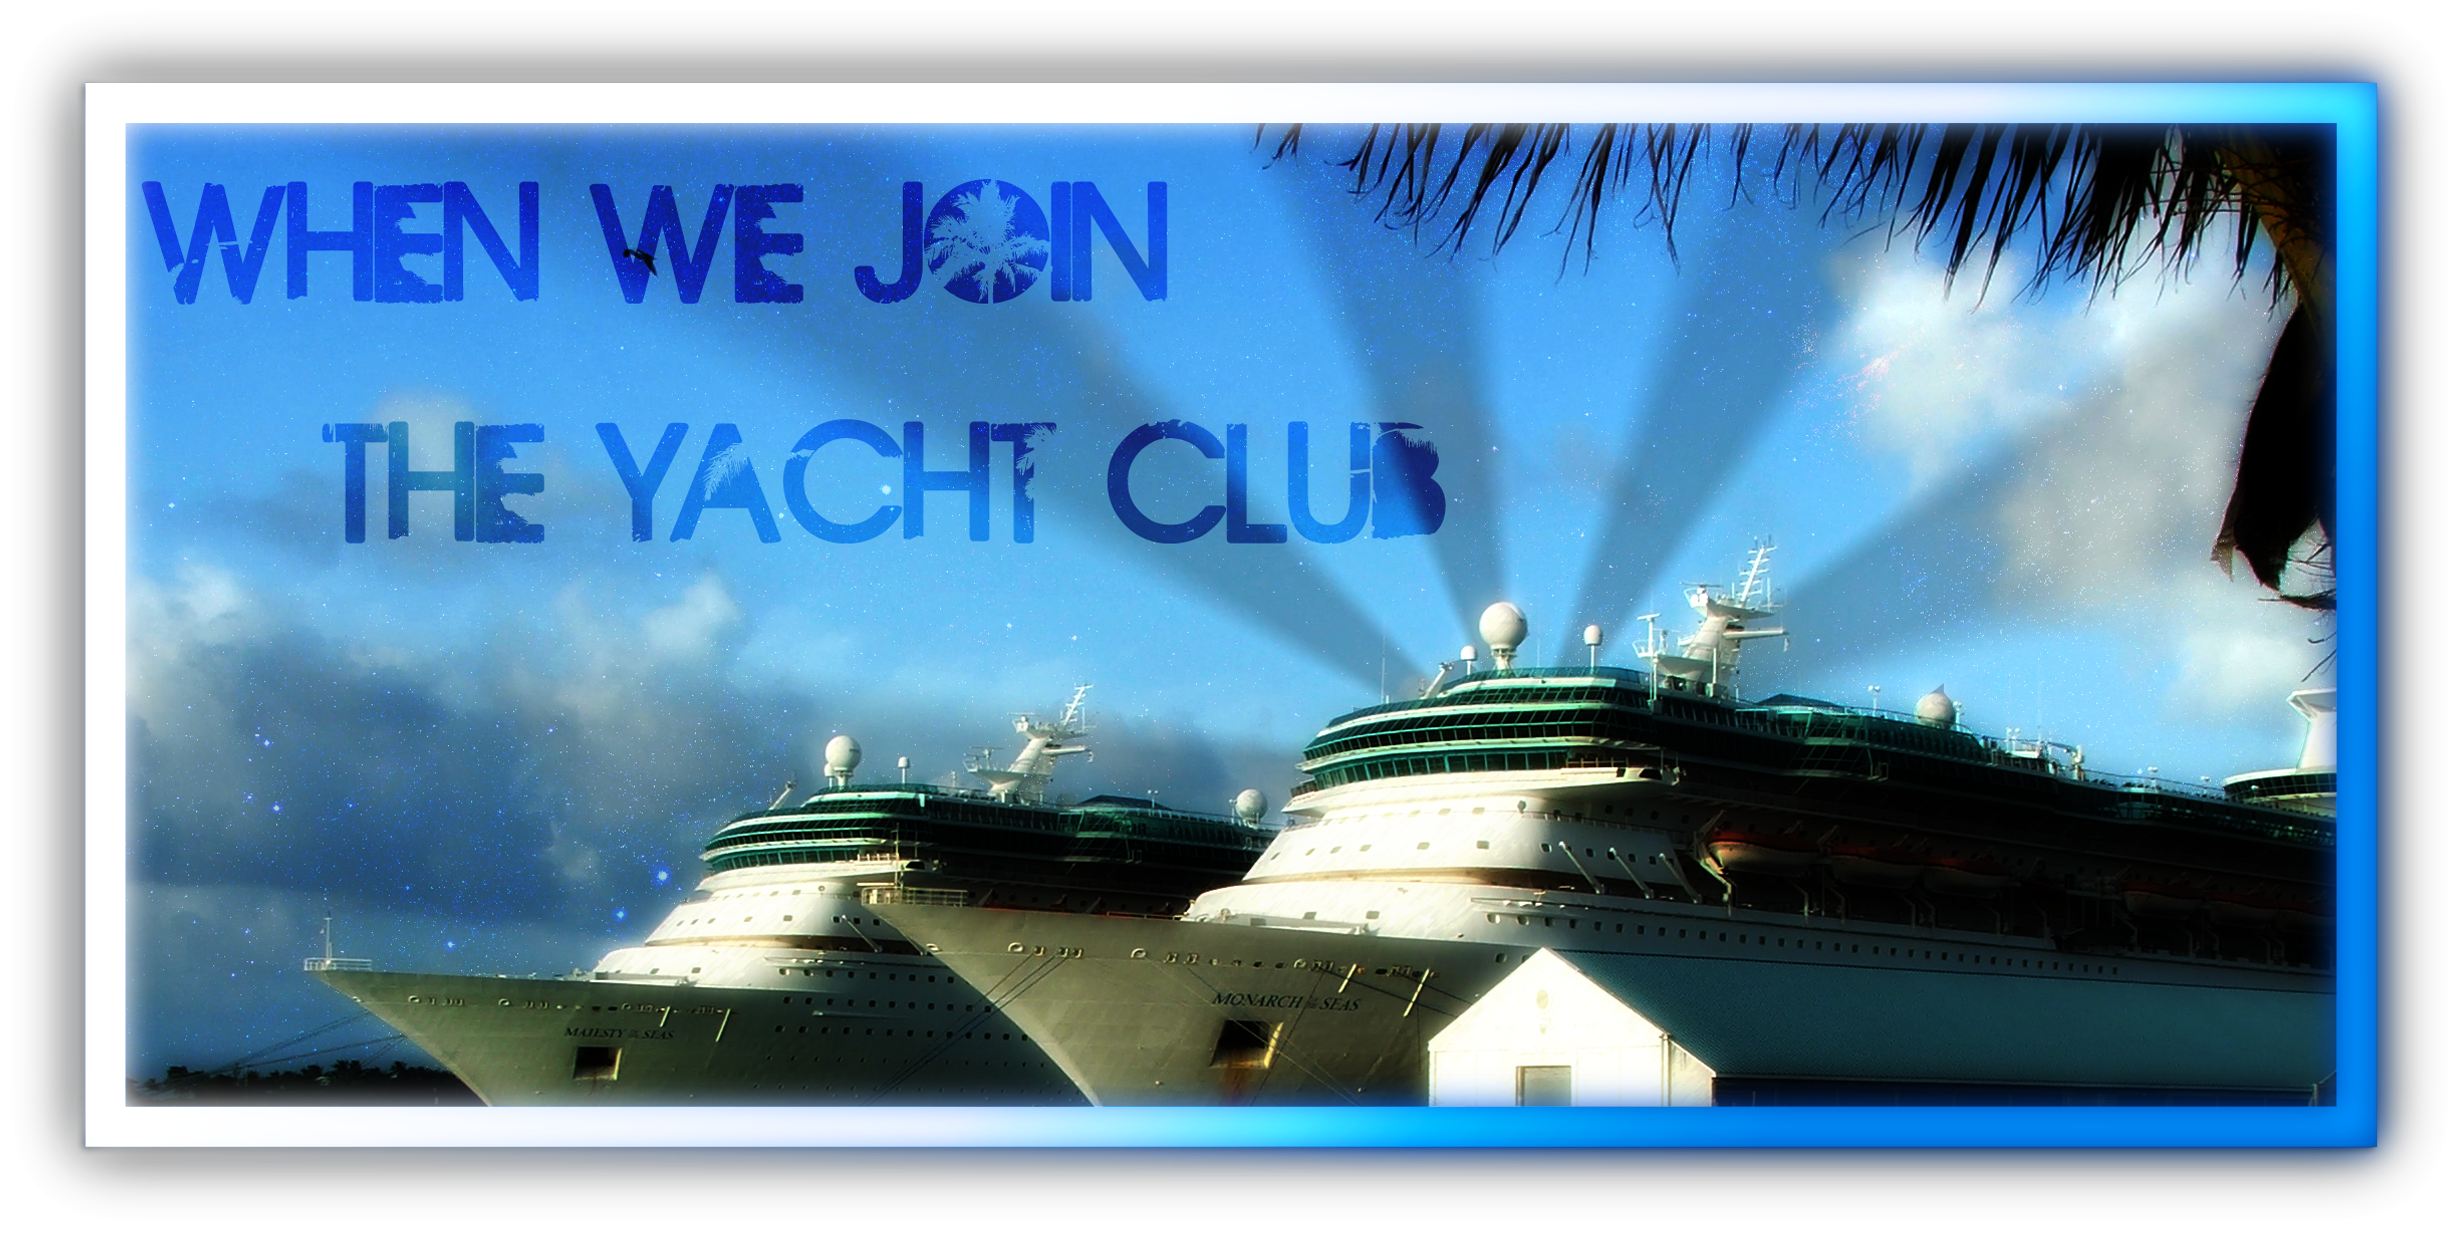 When We Join The Yacht Club by wombat7500 on DeviantArt - photo#23